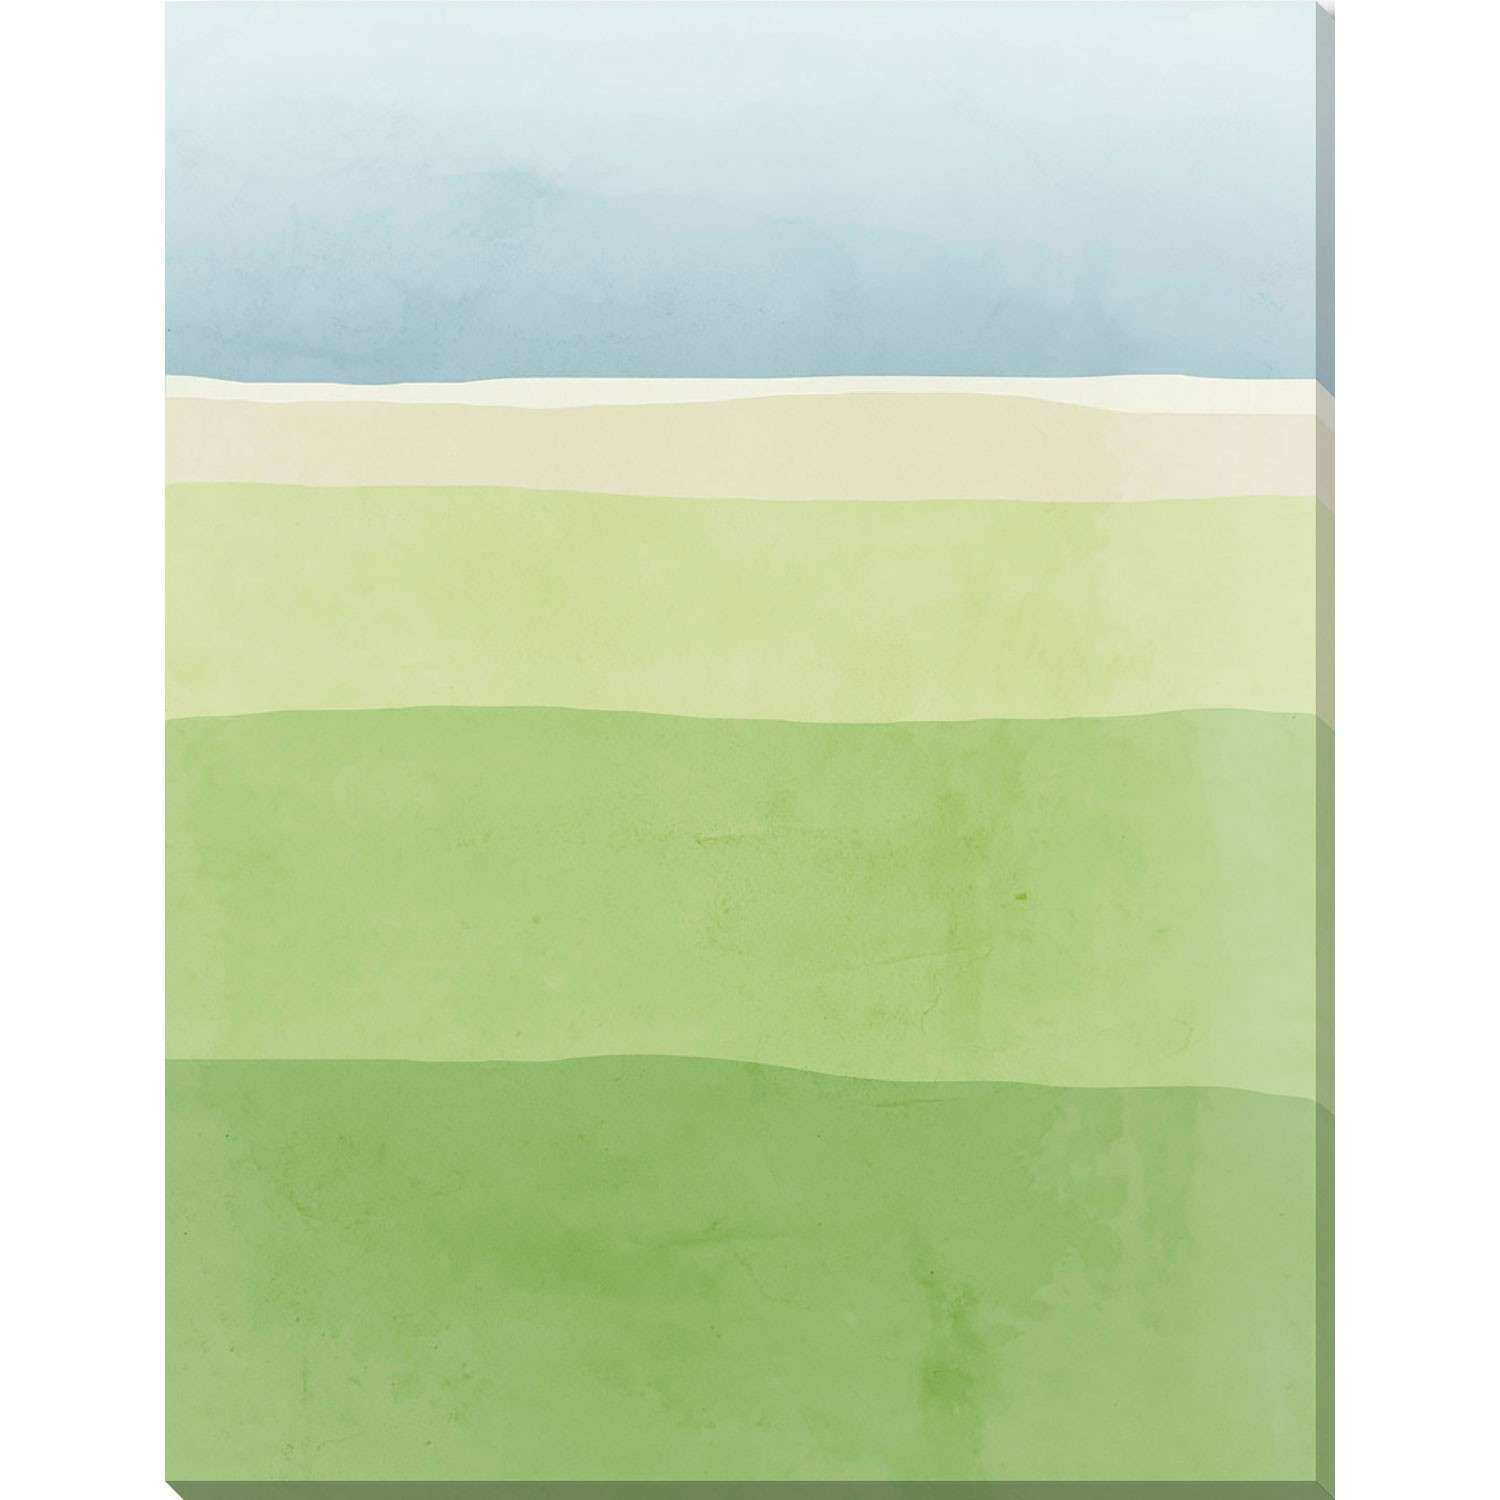 Loring Blue And Green Valley 14 X 18 In Wall Art 251